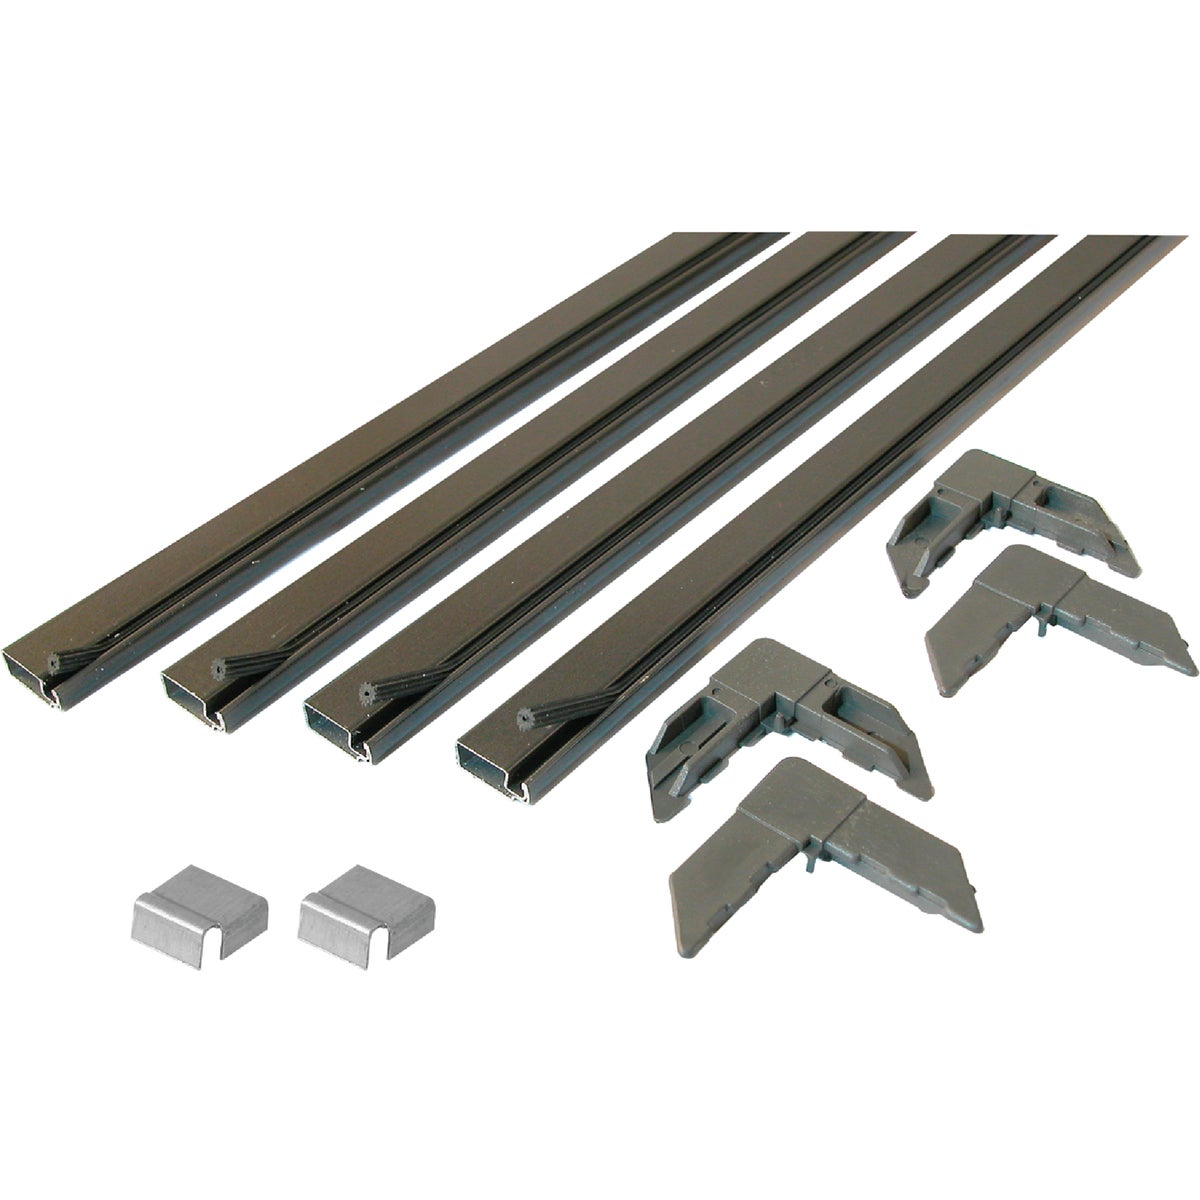 3/4X5/16X3' FRAME KIT - PL7806 by Prime Line Products